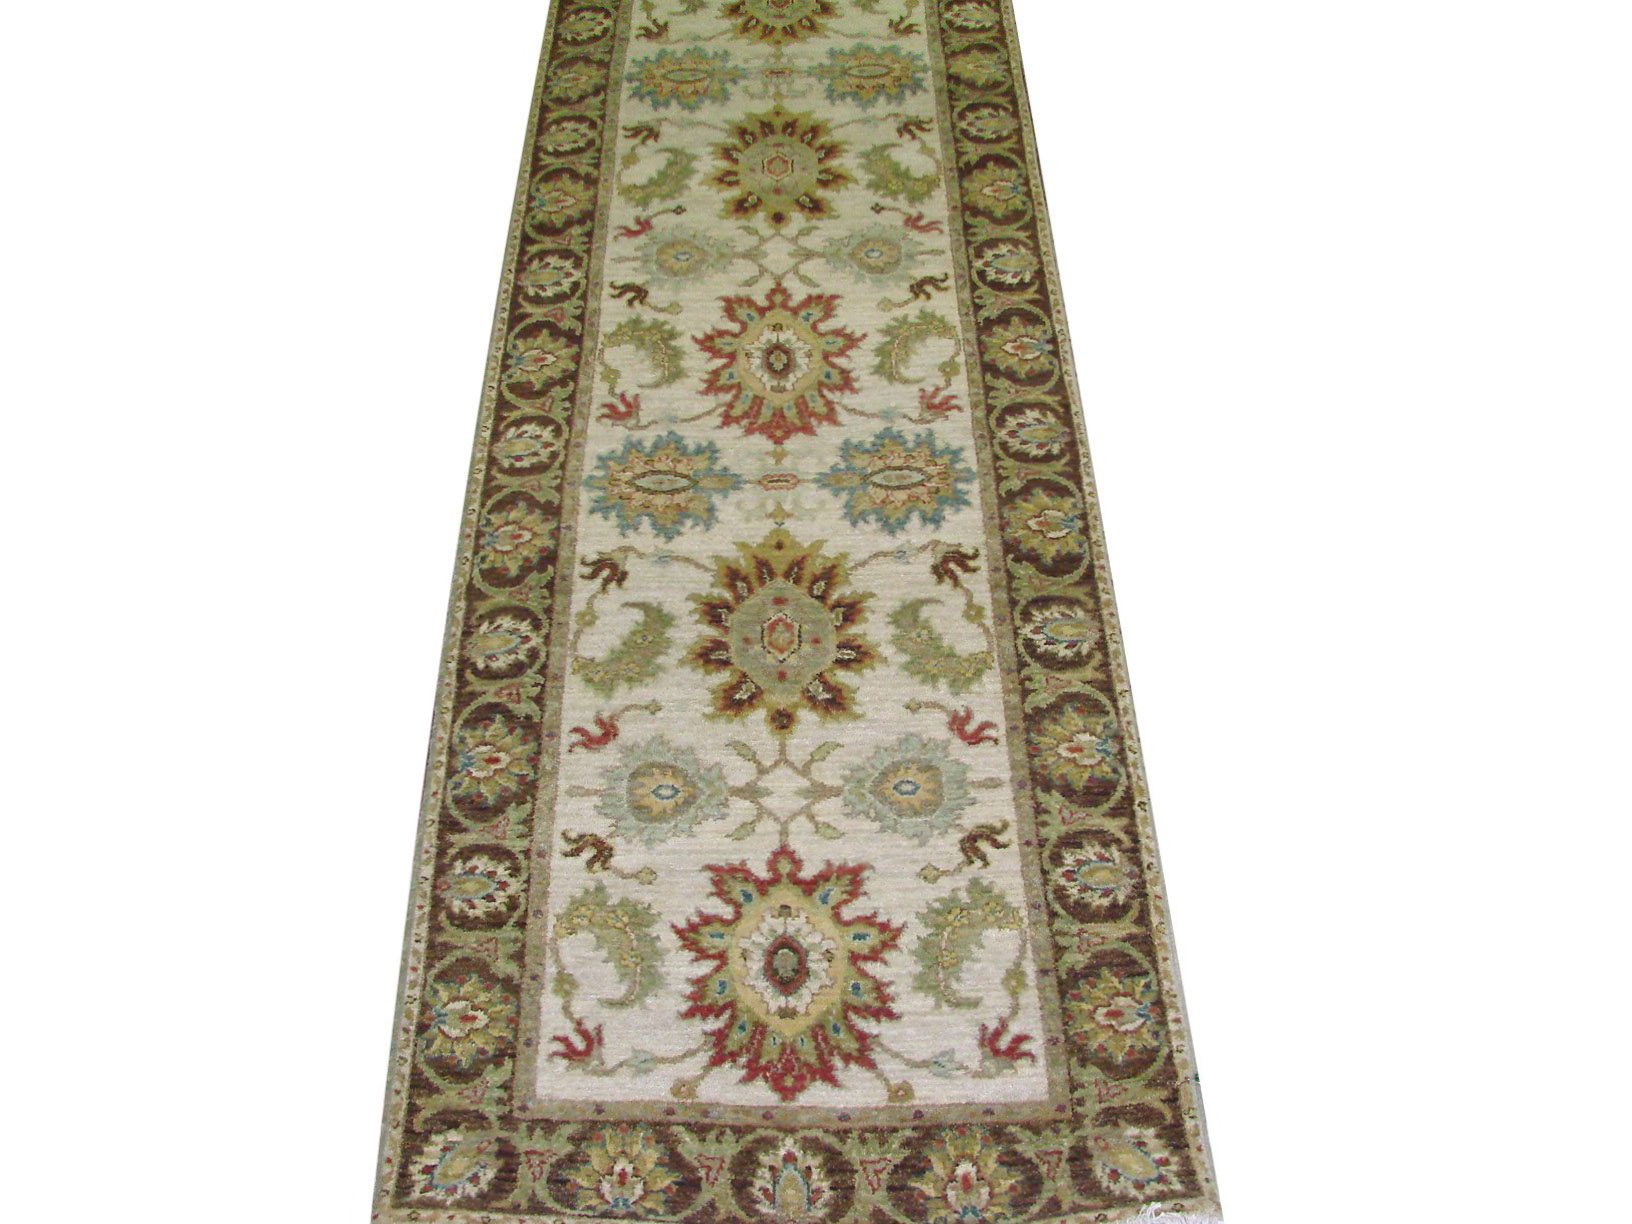 12 Runner Traditional Hand Knotted Wool Area Rug - MR021998